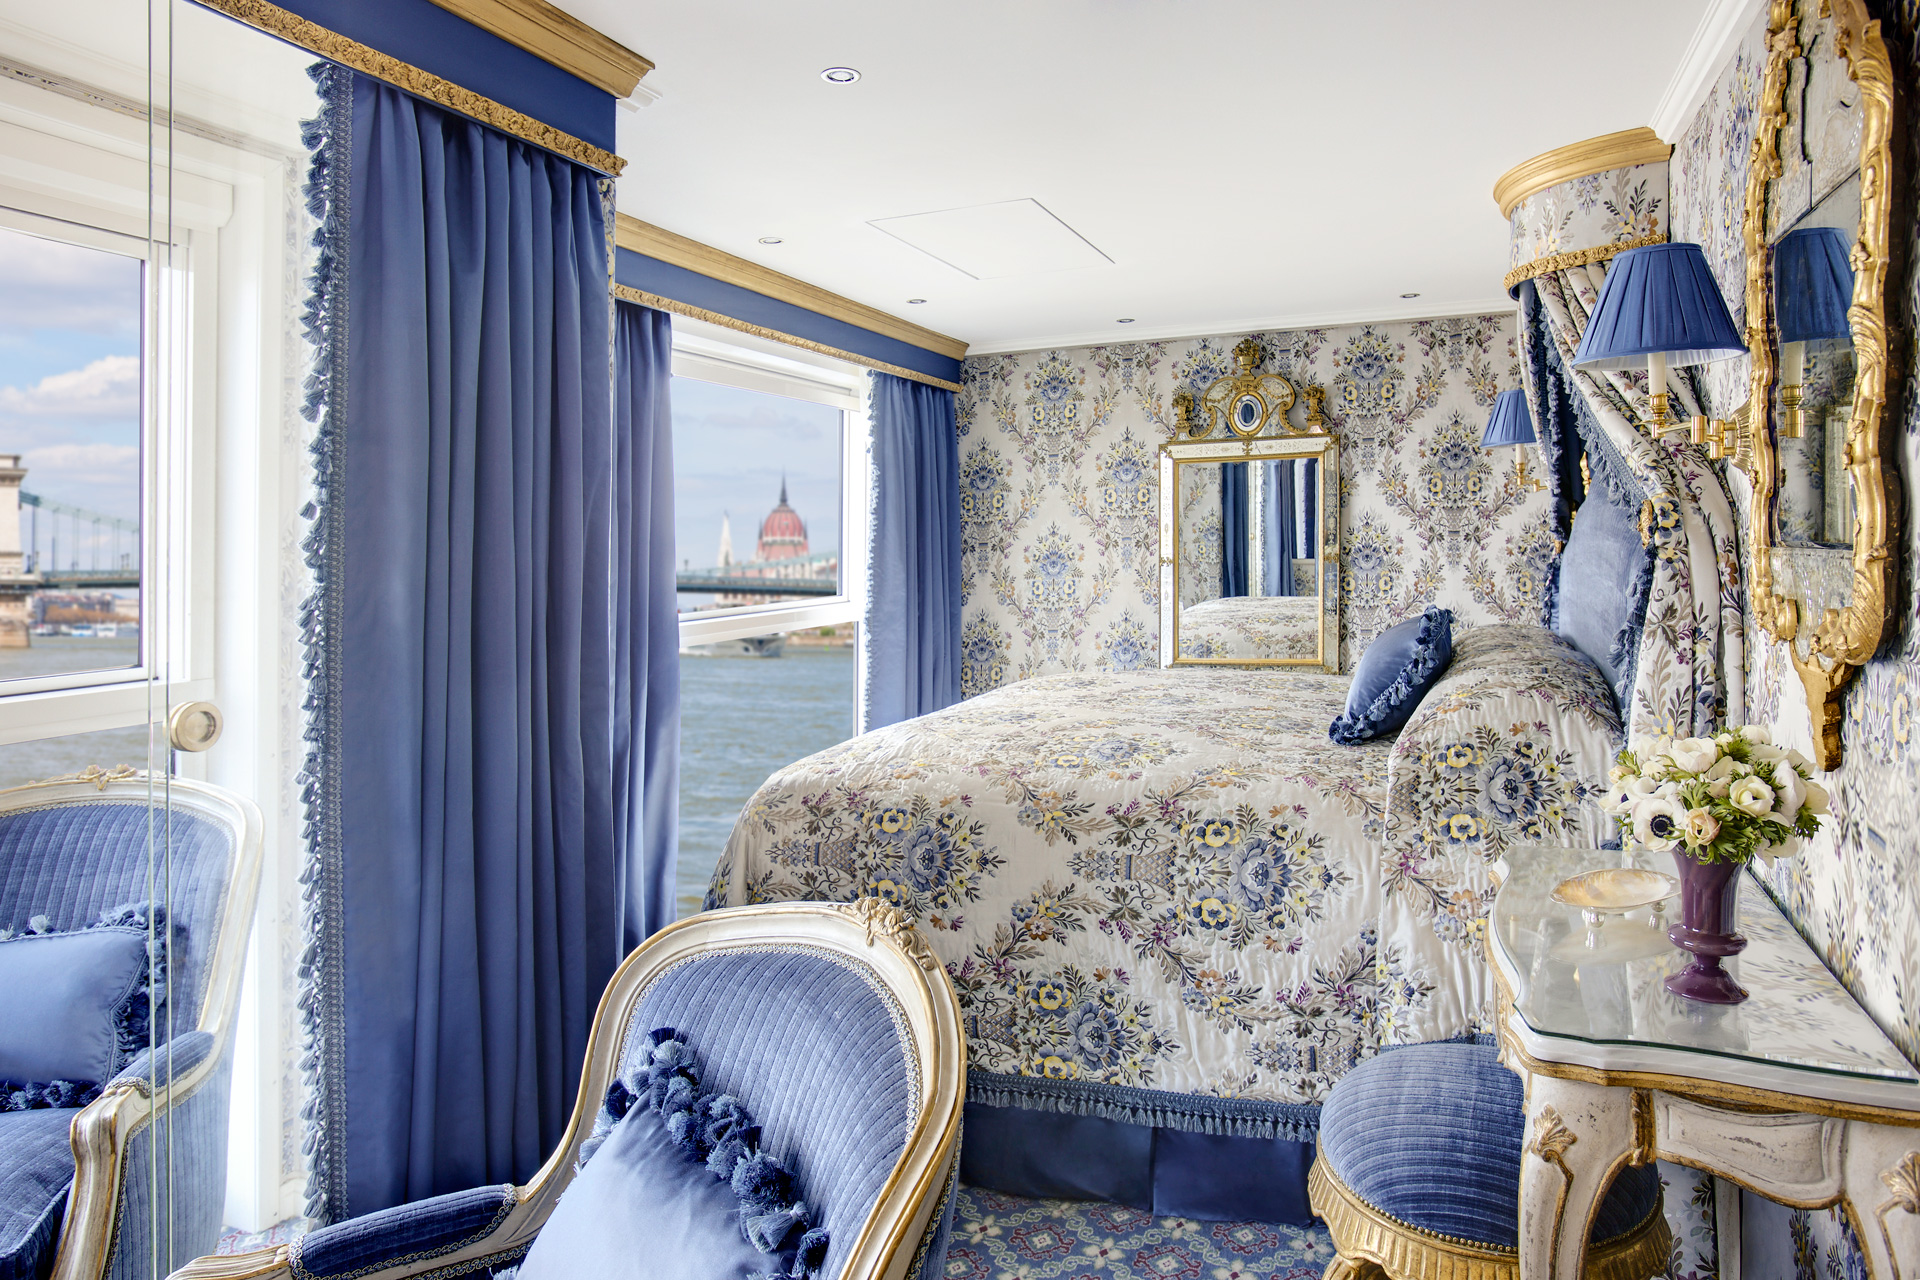 UNIWORLD Boutique River Cruises SS Maria Theresa Accommodation Suite 402 1.jpg